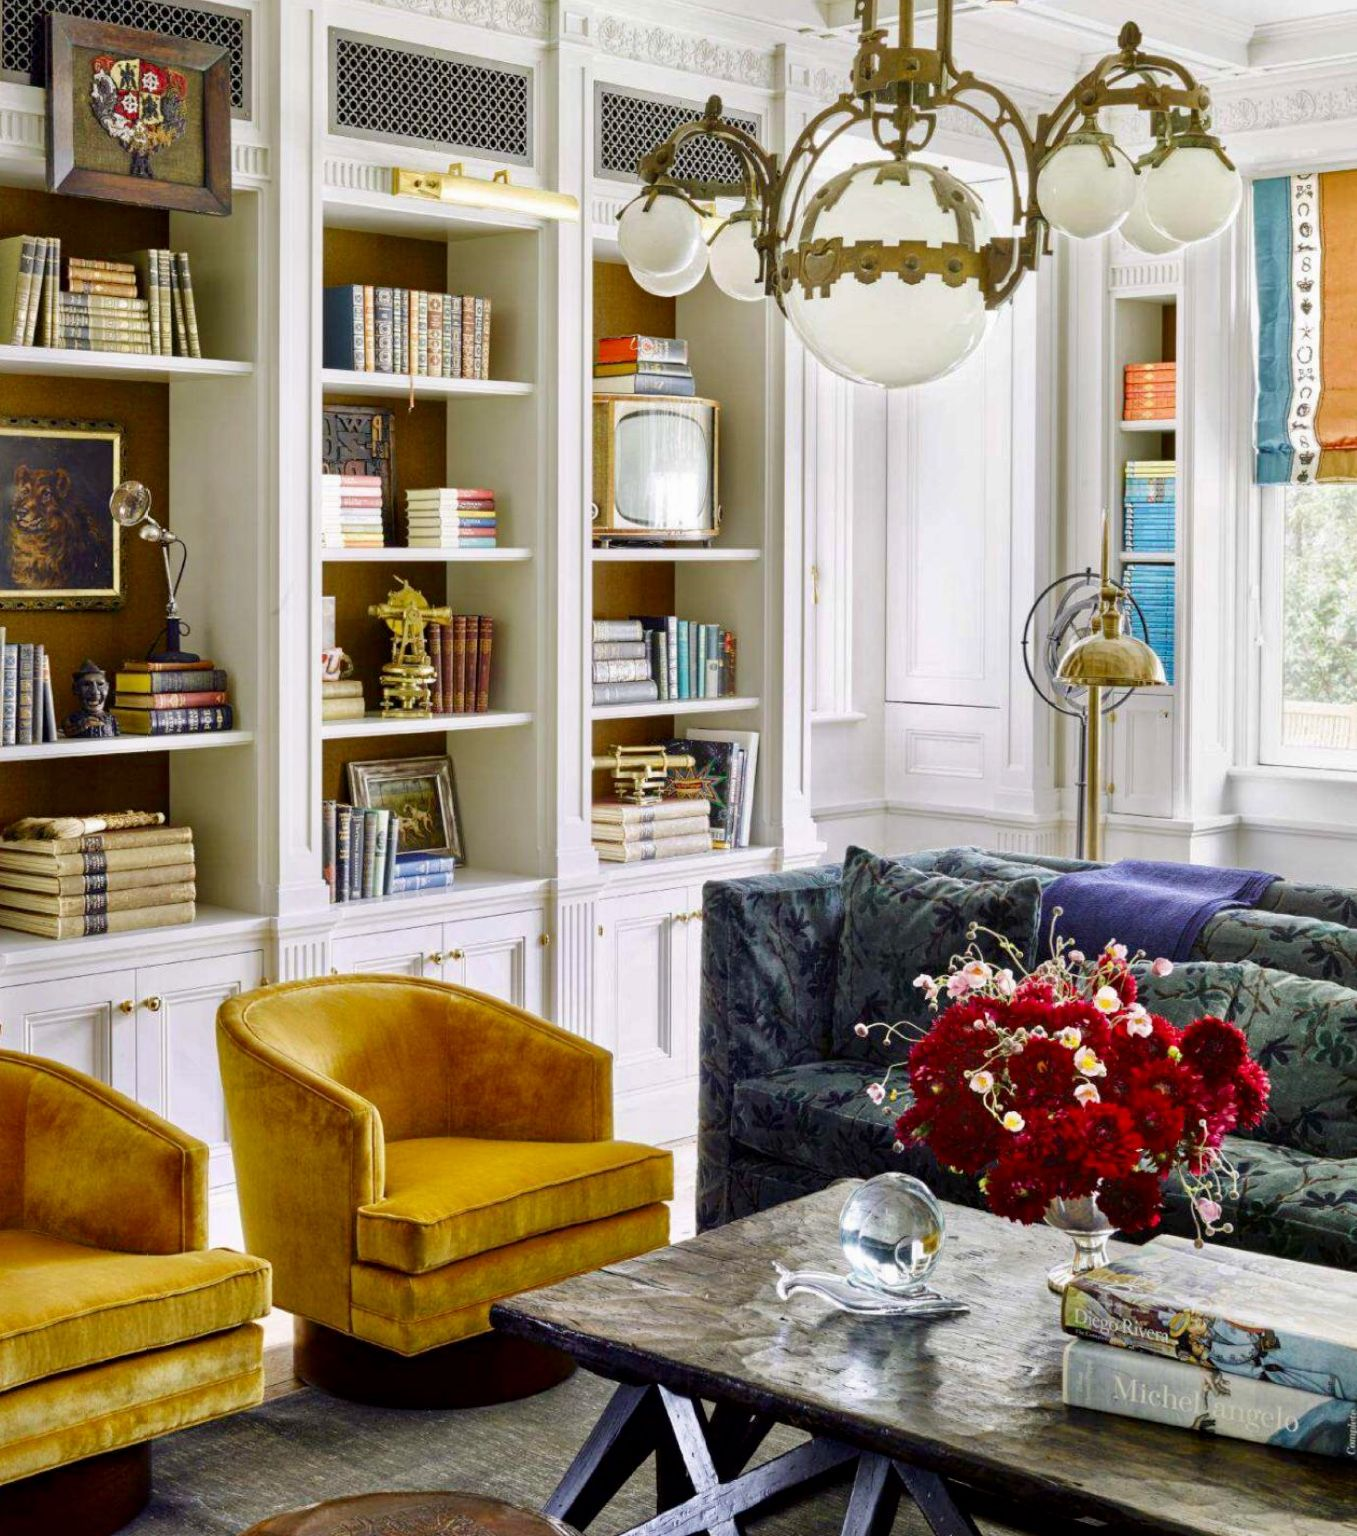 Library with mustard yellow chairs elle decor home